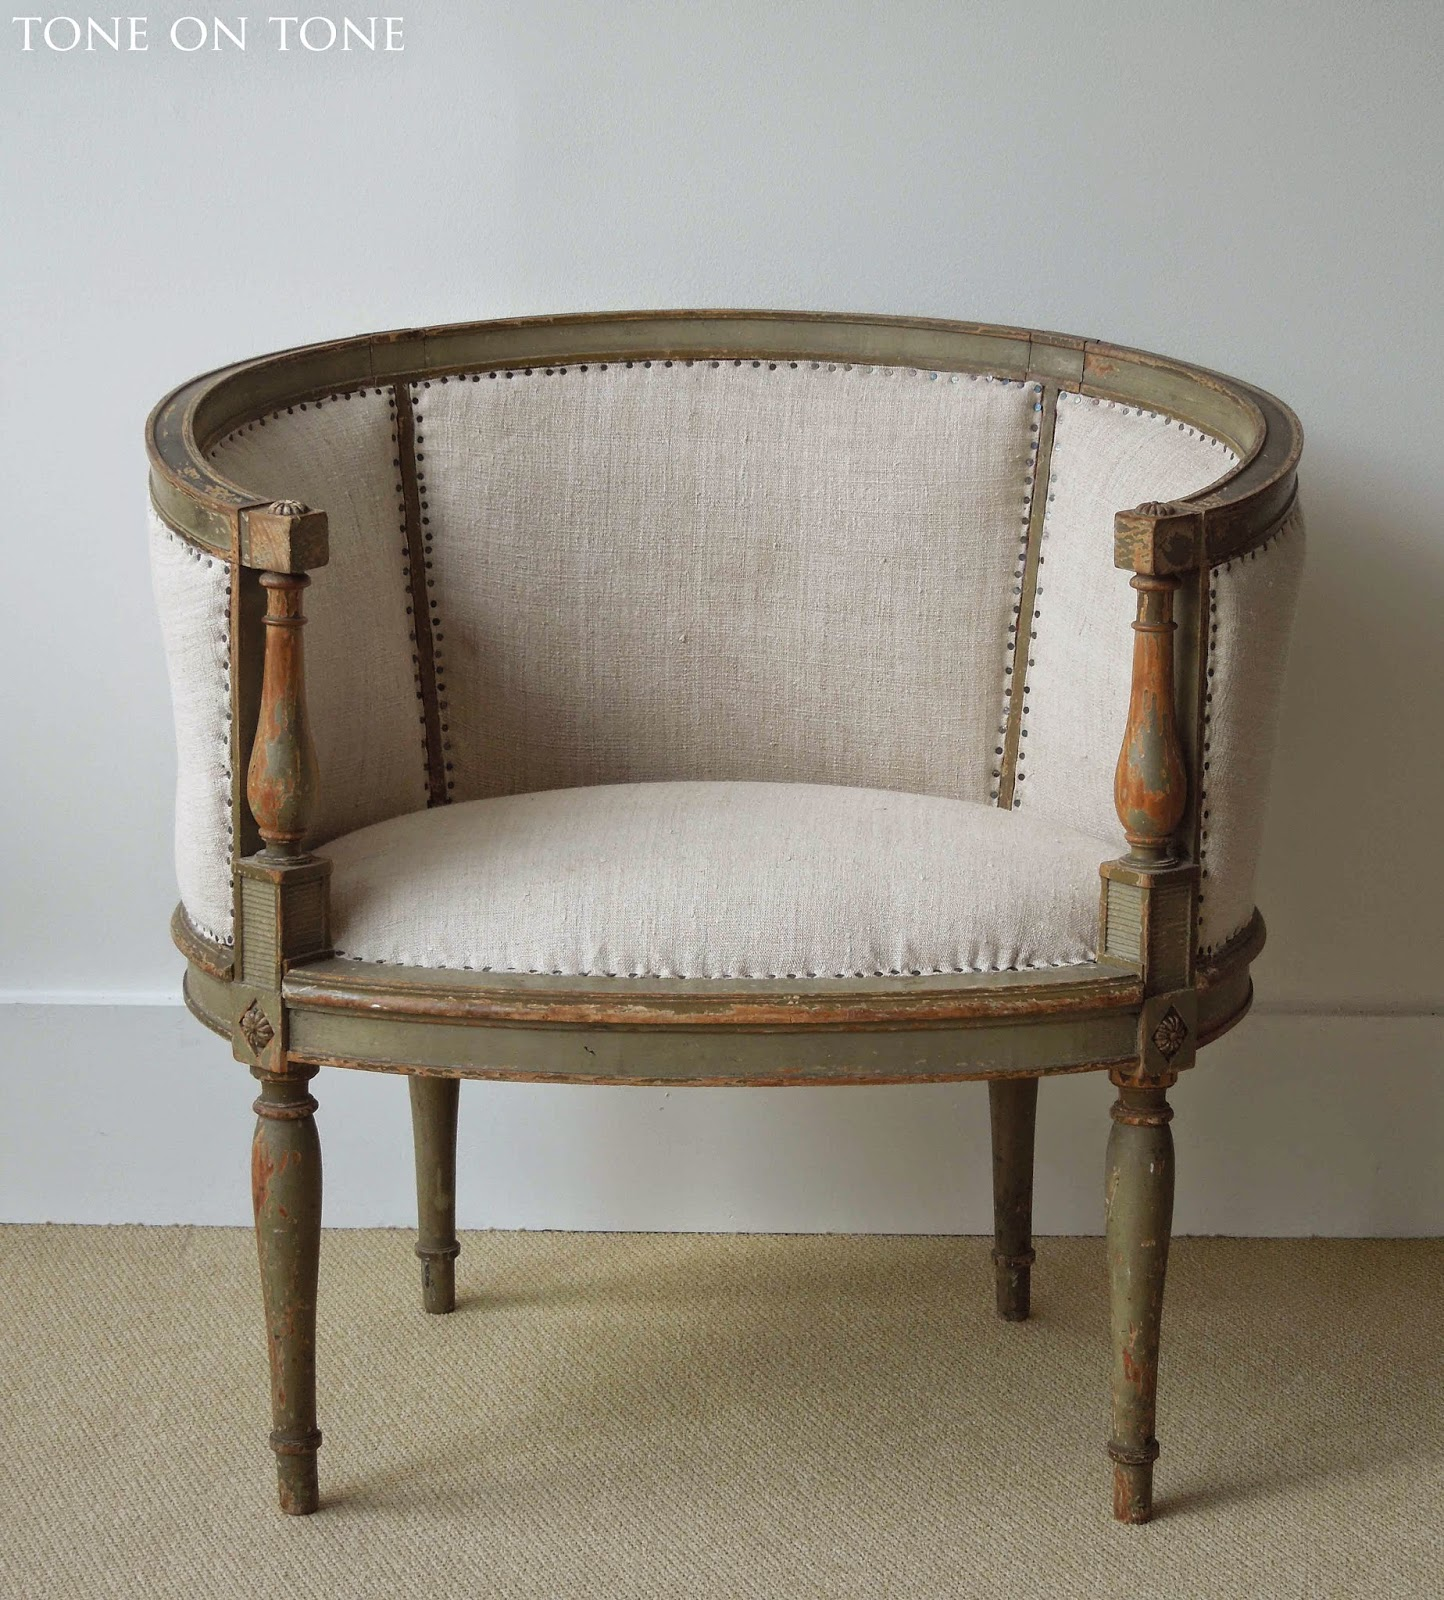 French Cane Back Barrel Chair At 1stdibs Tone On New Shipment Preview